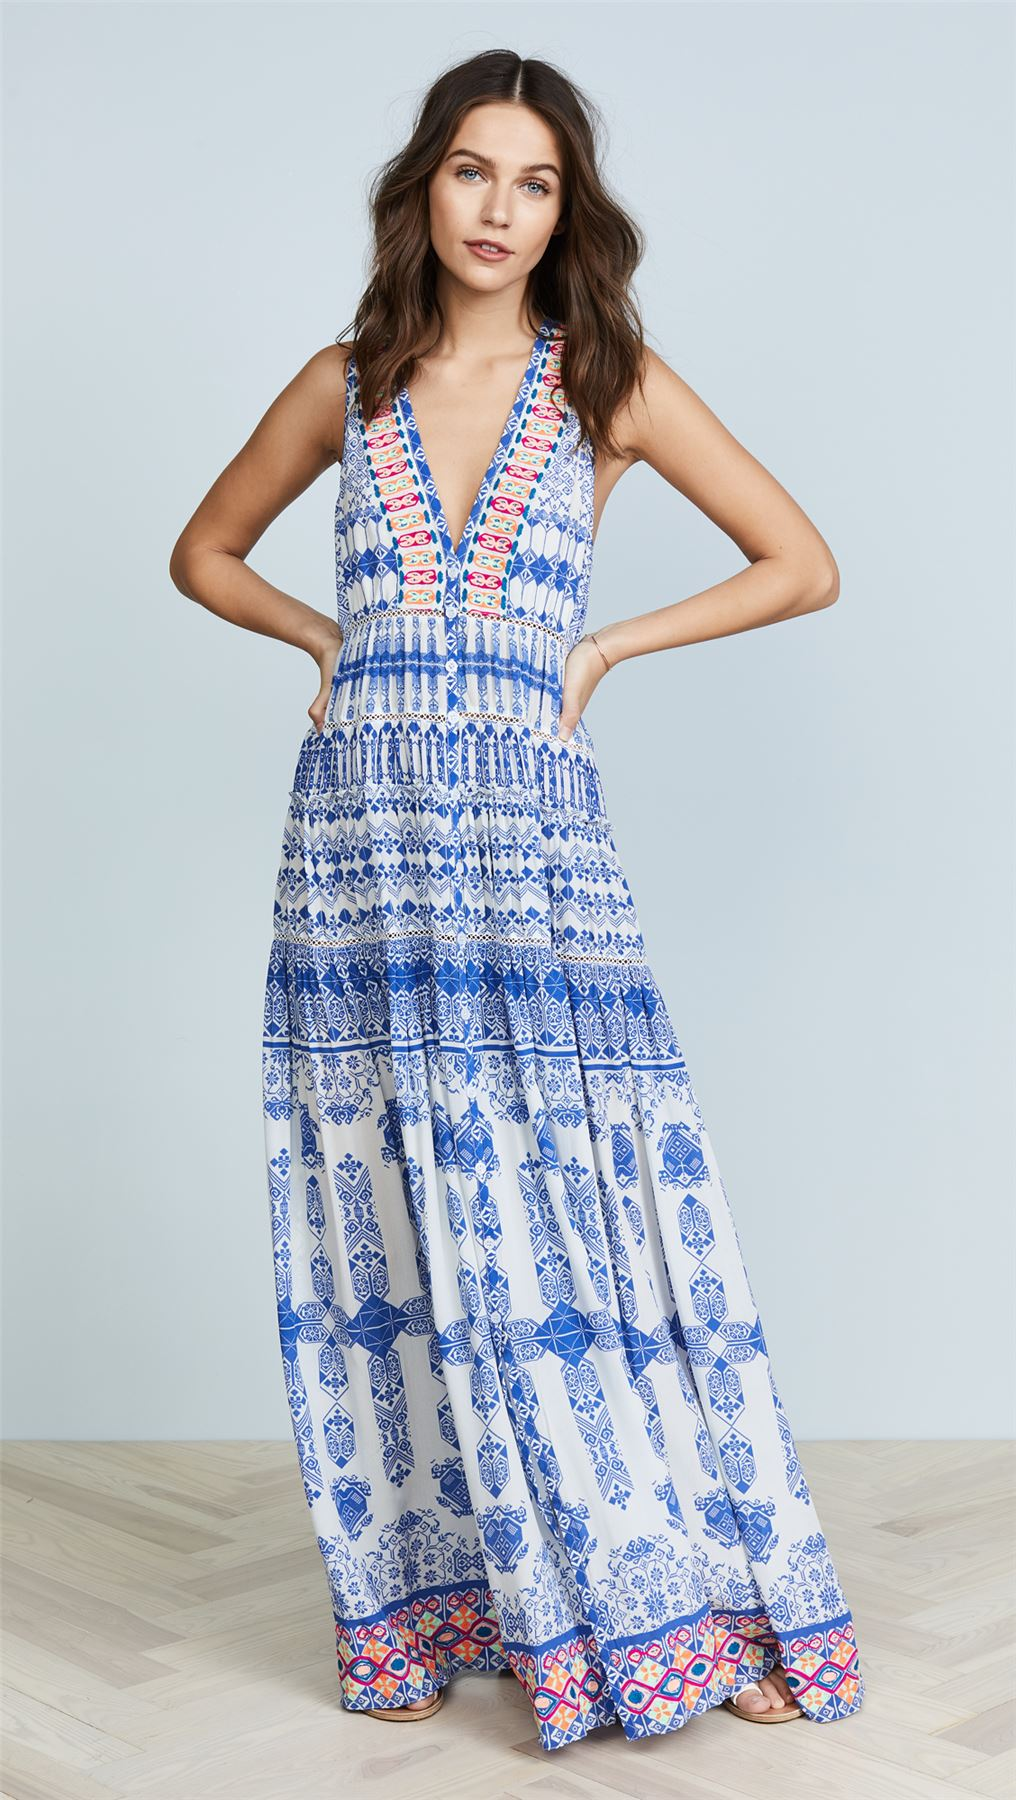 64f55f7bed Details about ROCOCO SAND IONIC PRINTED MAXI DRESS XSMALL